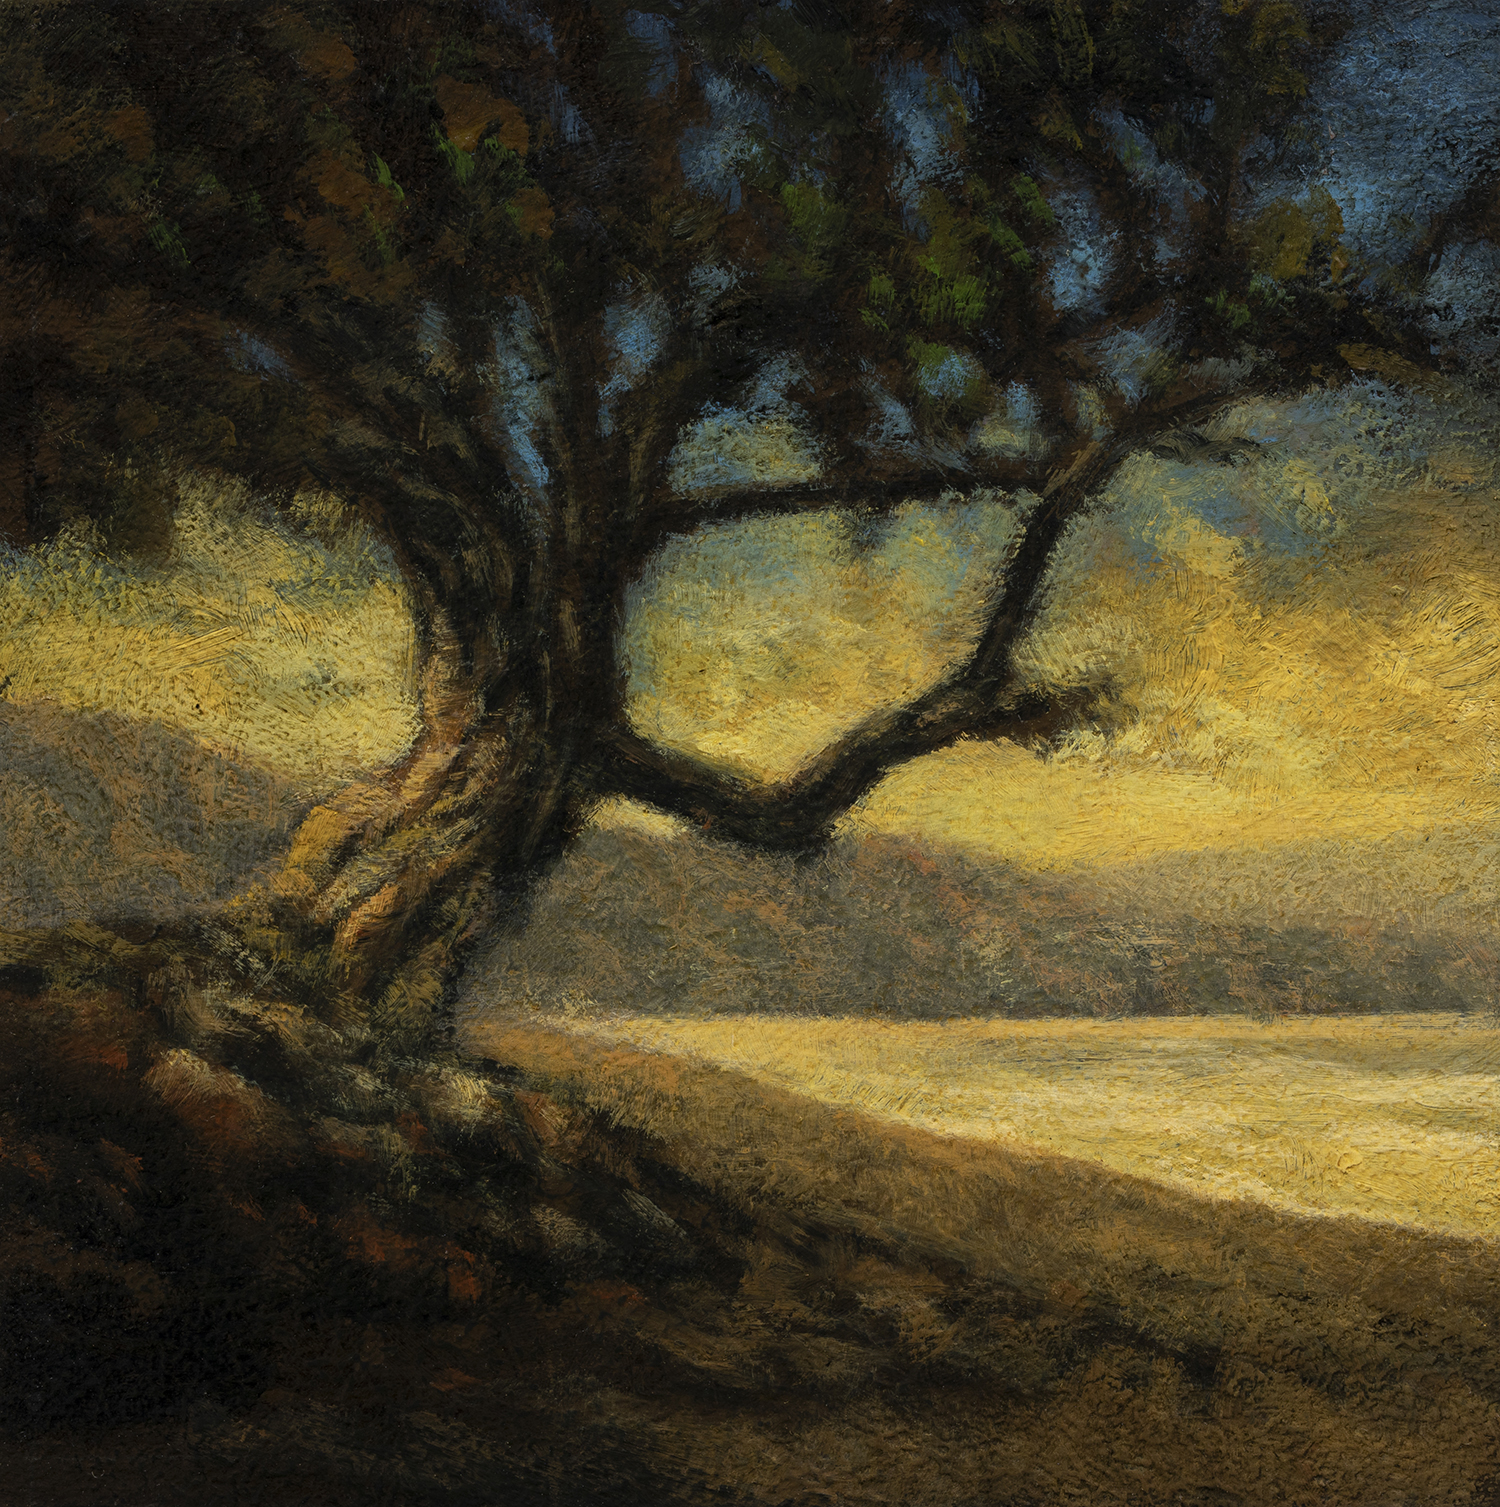 Tree by Bay by M Francis McCarthy - 5x5 Oil on Wood Panel